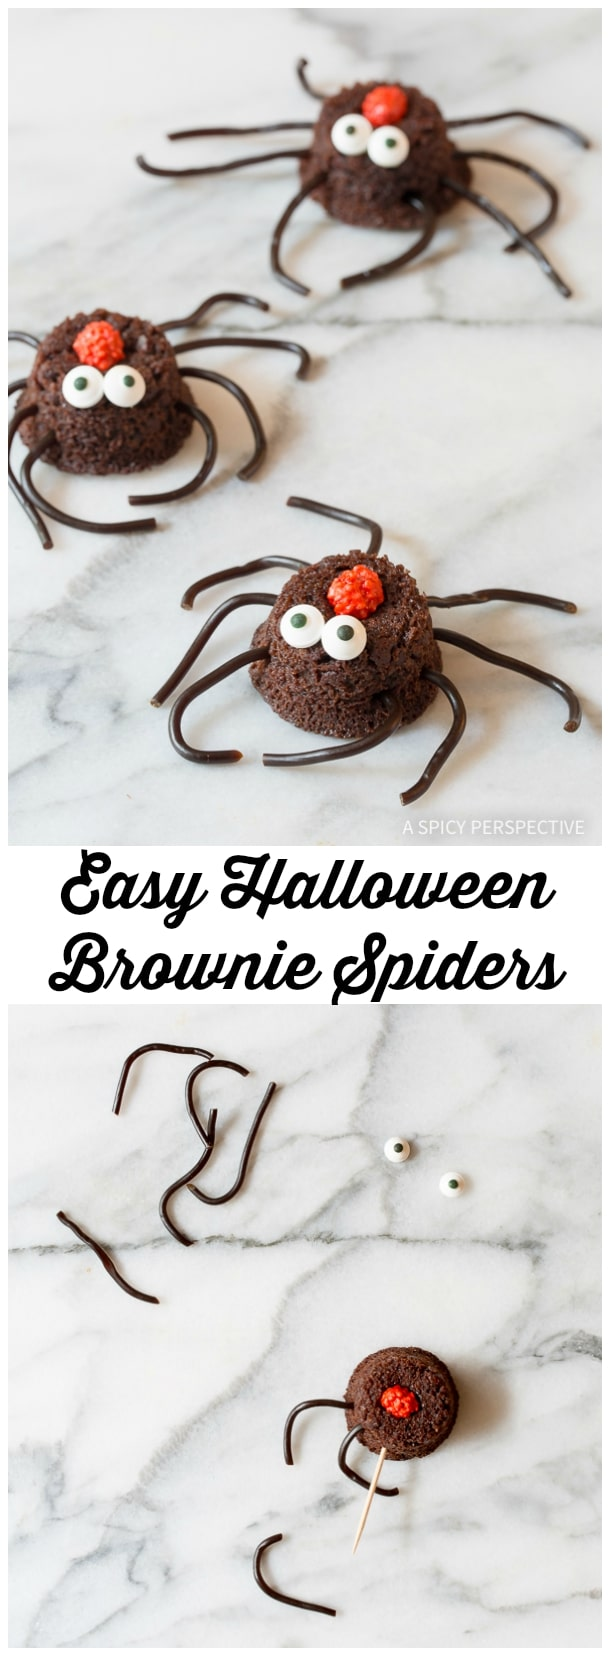 Learn How to Make Spooky Spiders - 5 Easy Halloween Treats Made with Brownie Bites on ASpicyPerspective.com - Fun for Kids!